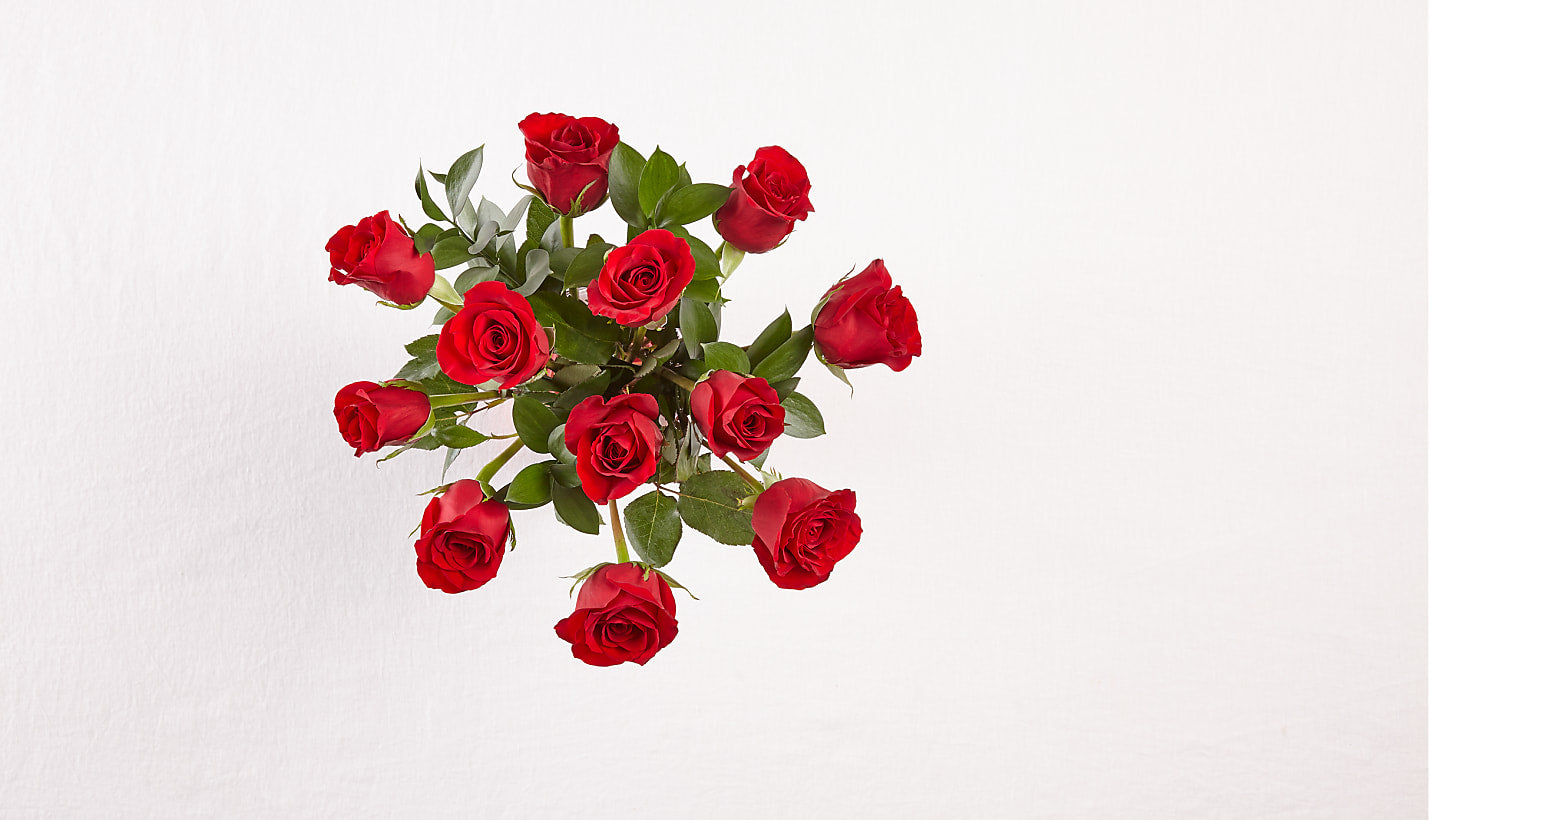 12 Red Roses with Vase - Image 2 Of 2